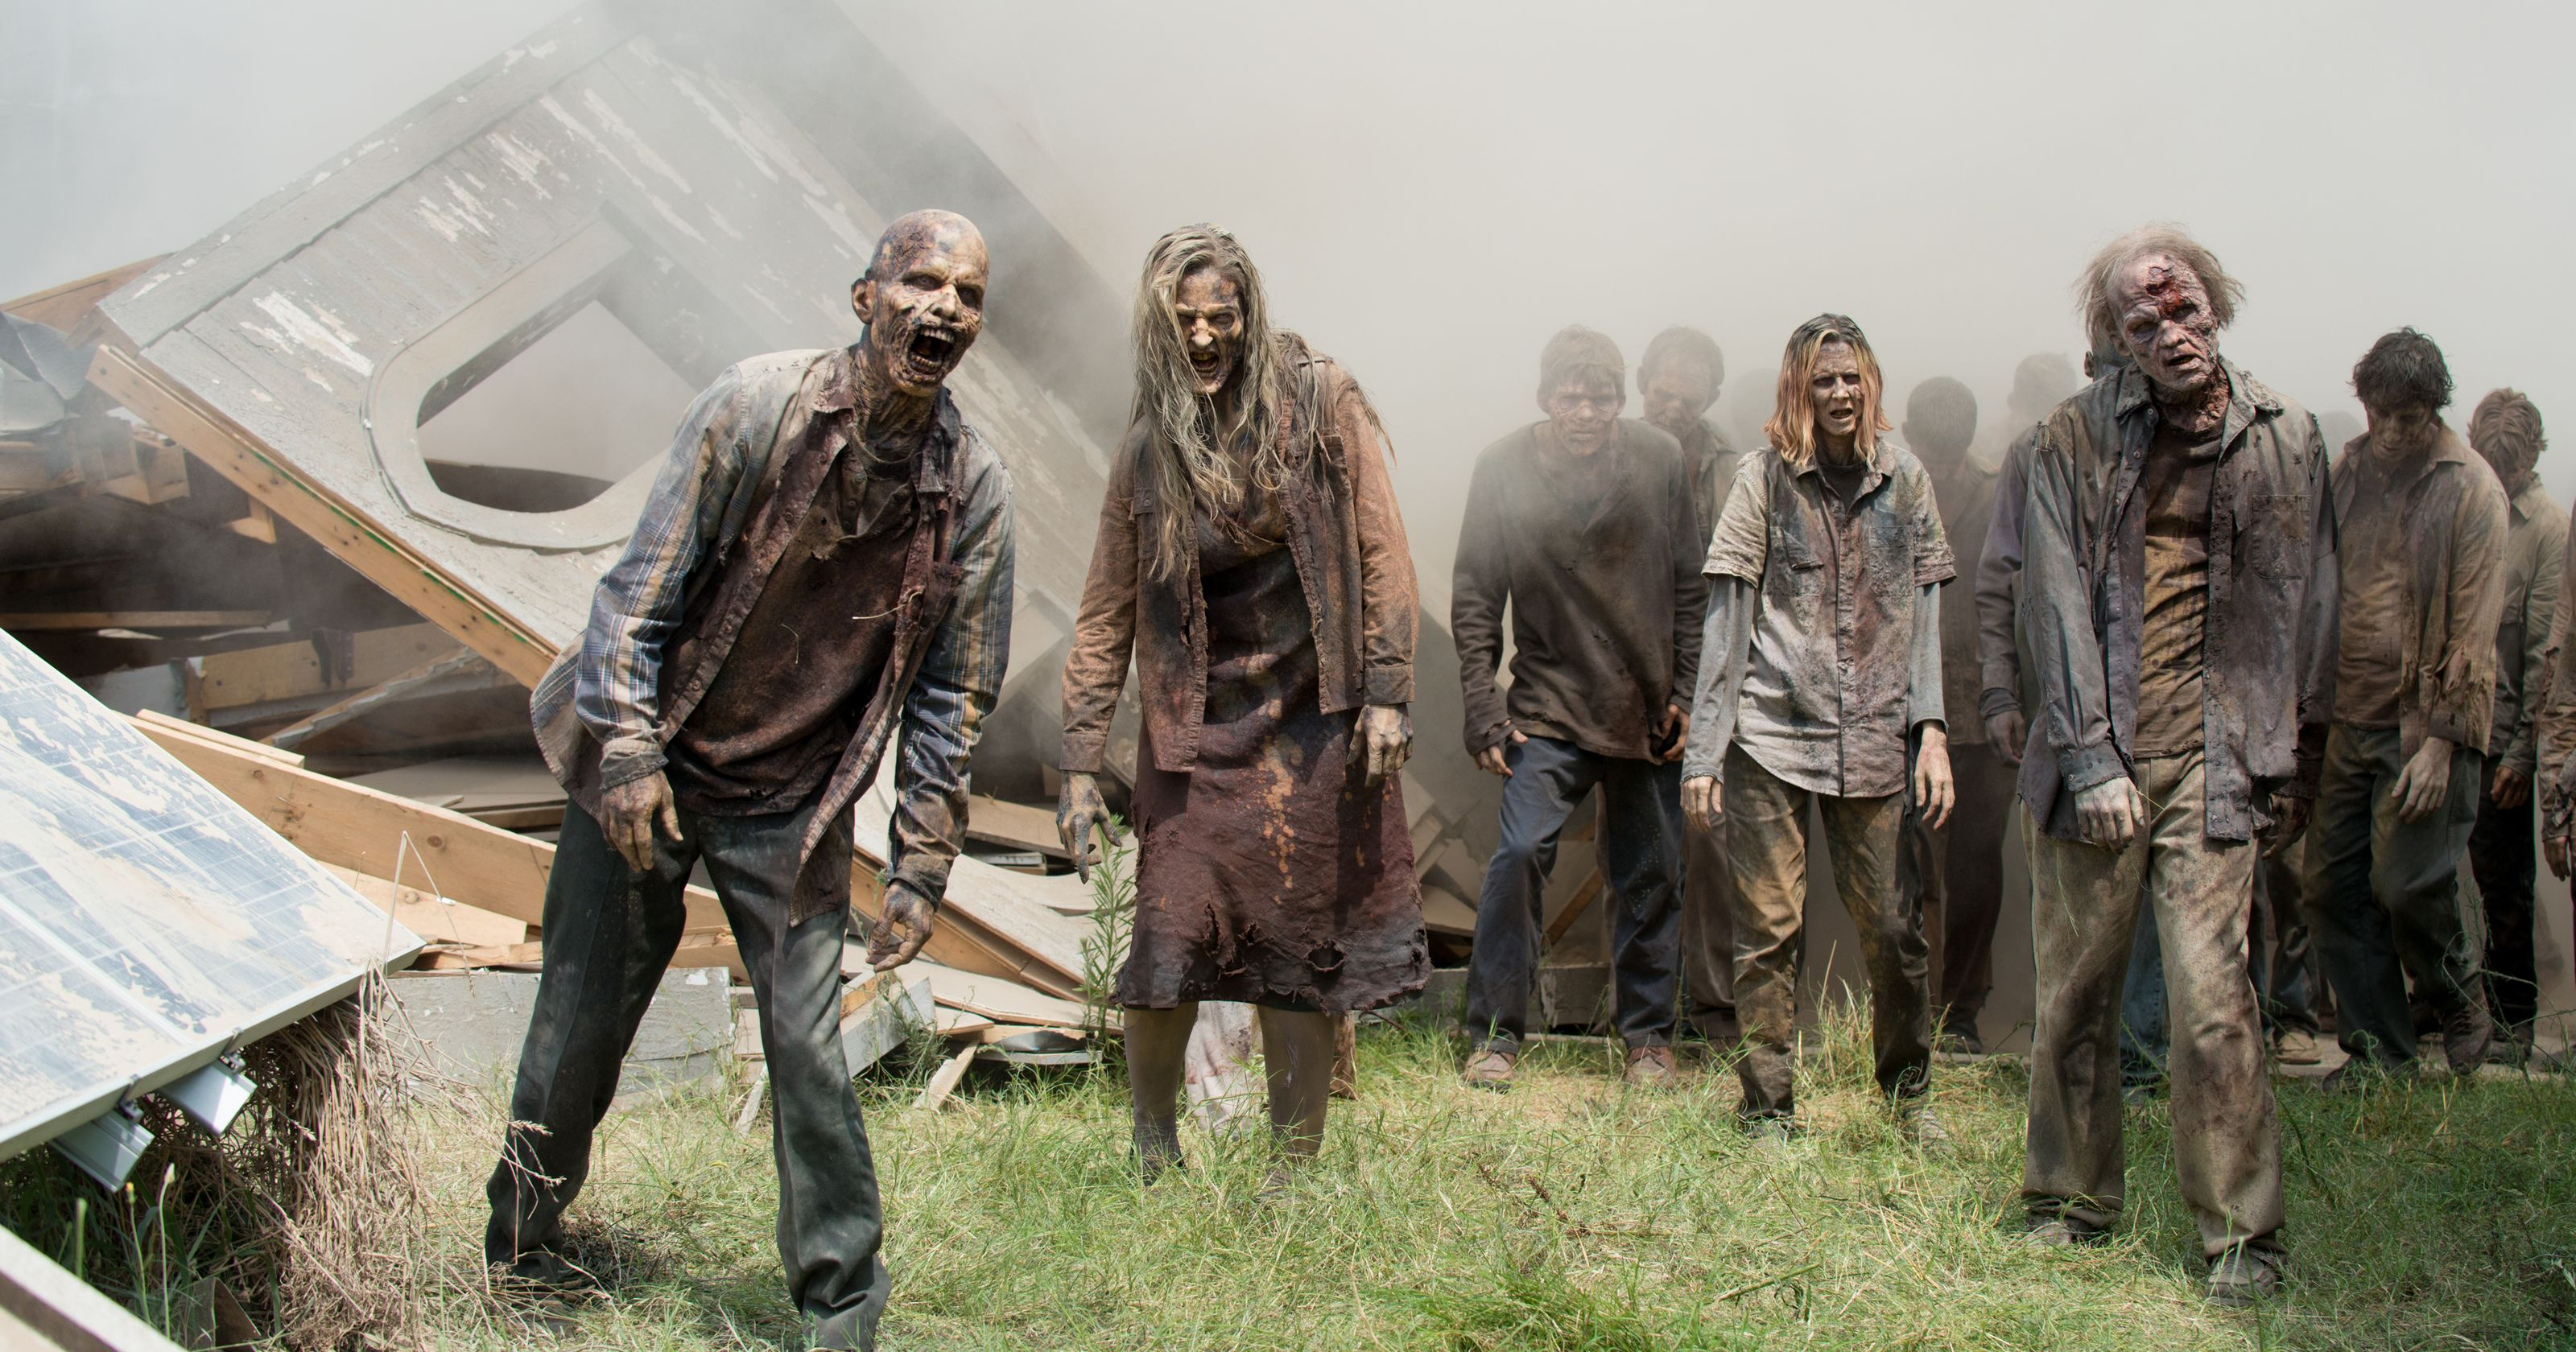 635910975427054576-the-walking-dead-zombies.jpg